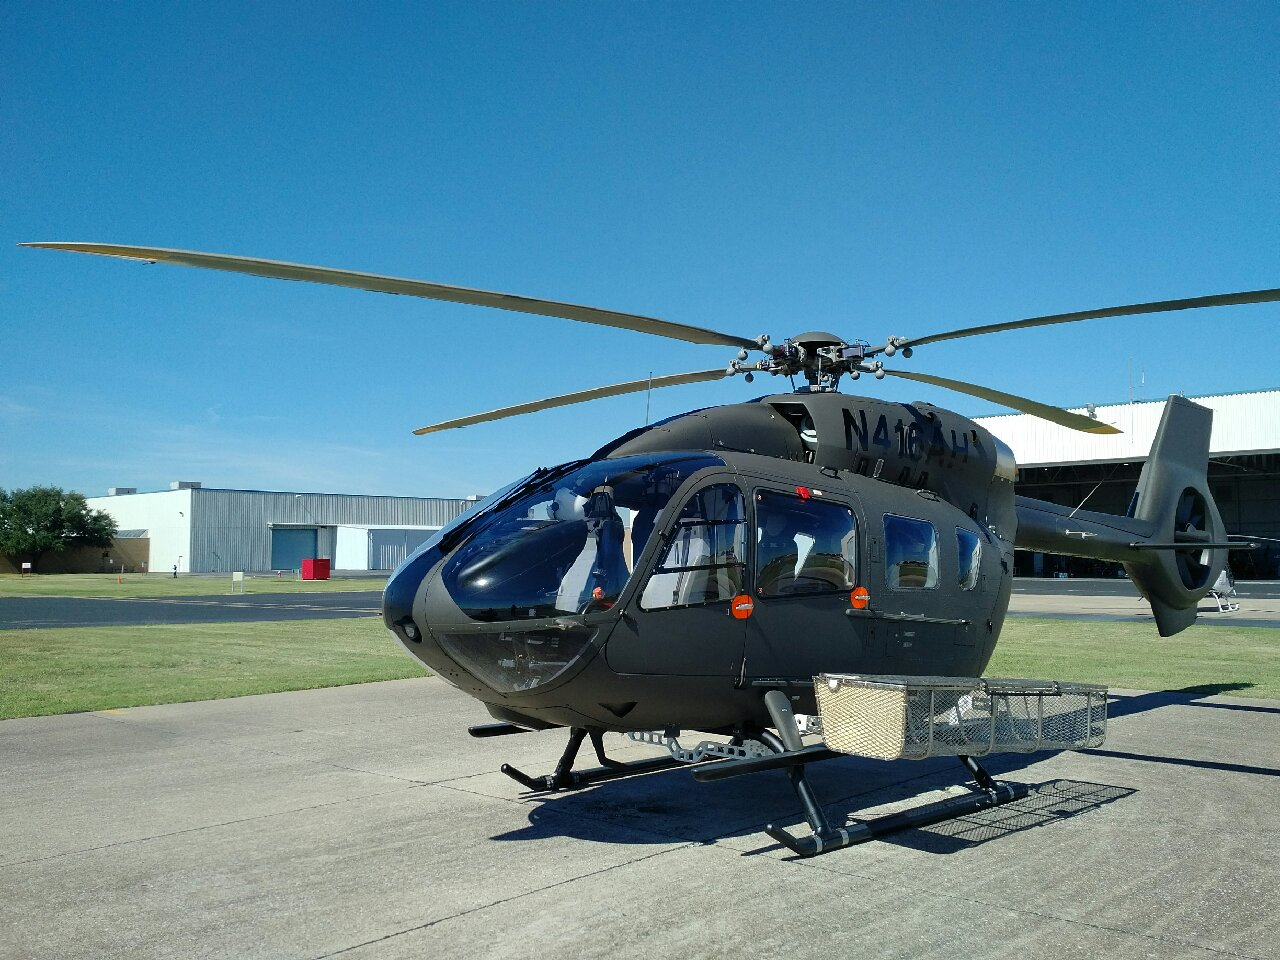 Helicopter rests on ground with basket attached